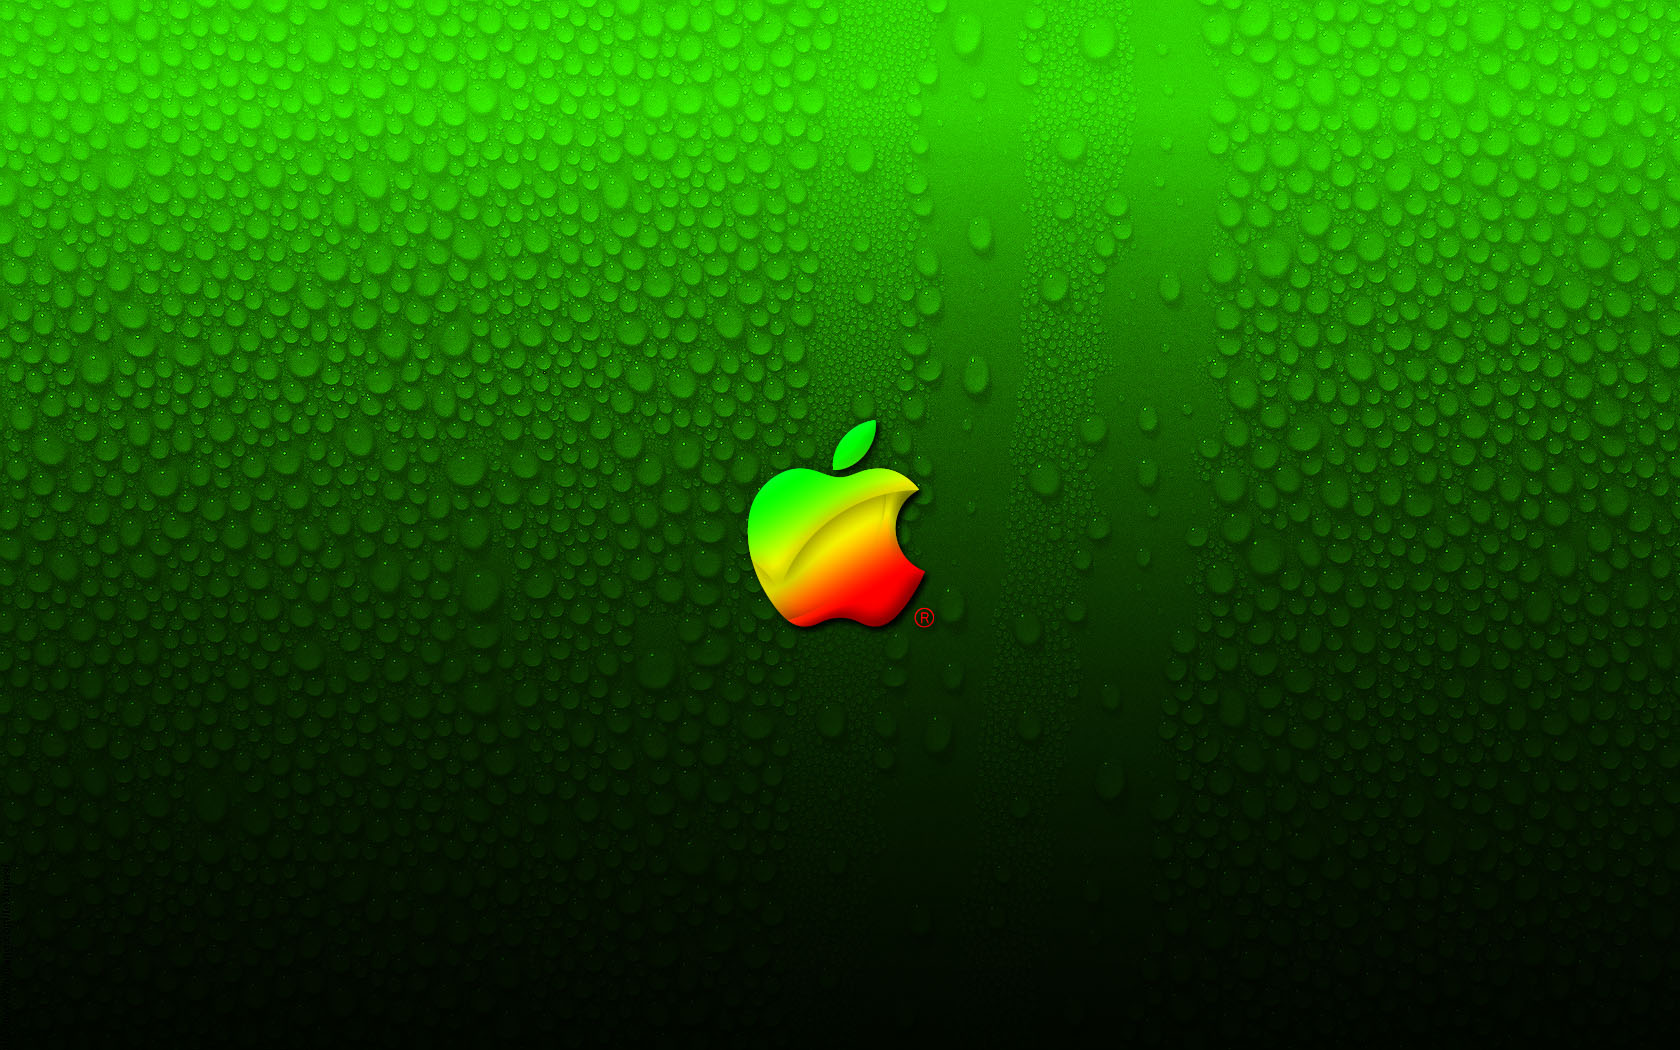 Apple Wallpapers Best Hd Apple Wallpapers Apple Wallpapers 1680x1050